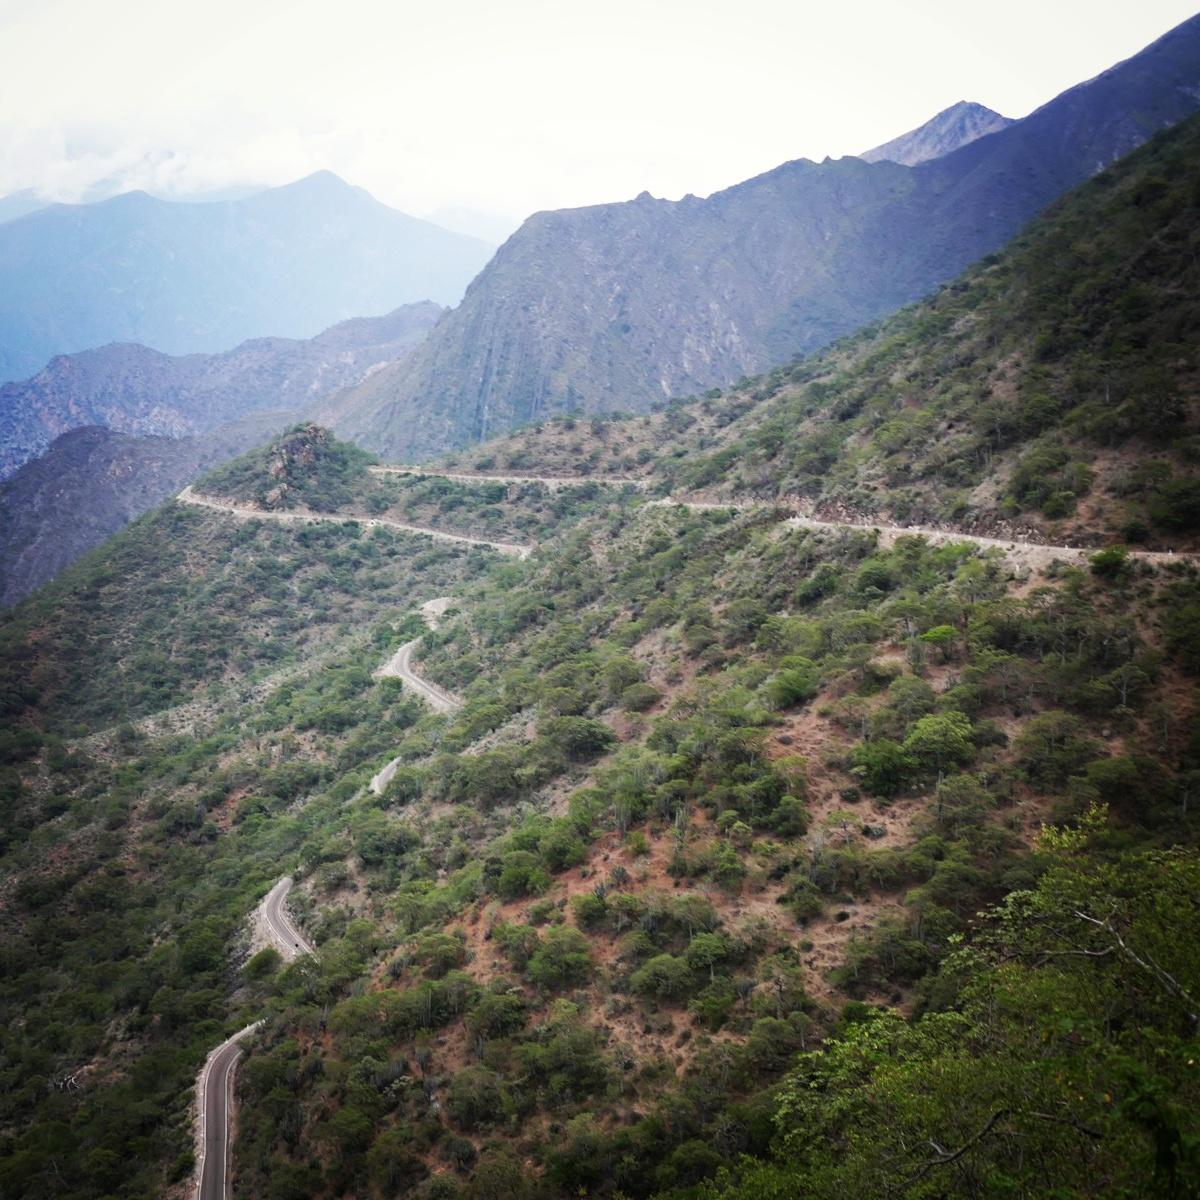 A view of the lower, drier parts of the Maranon Valley in northern Peru. Noah Strycker